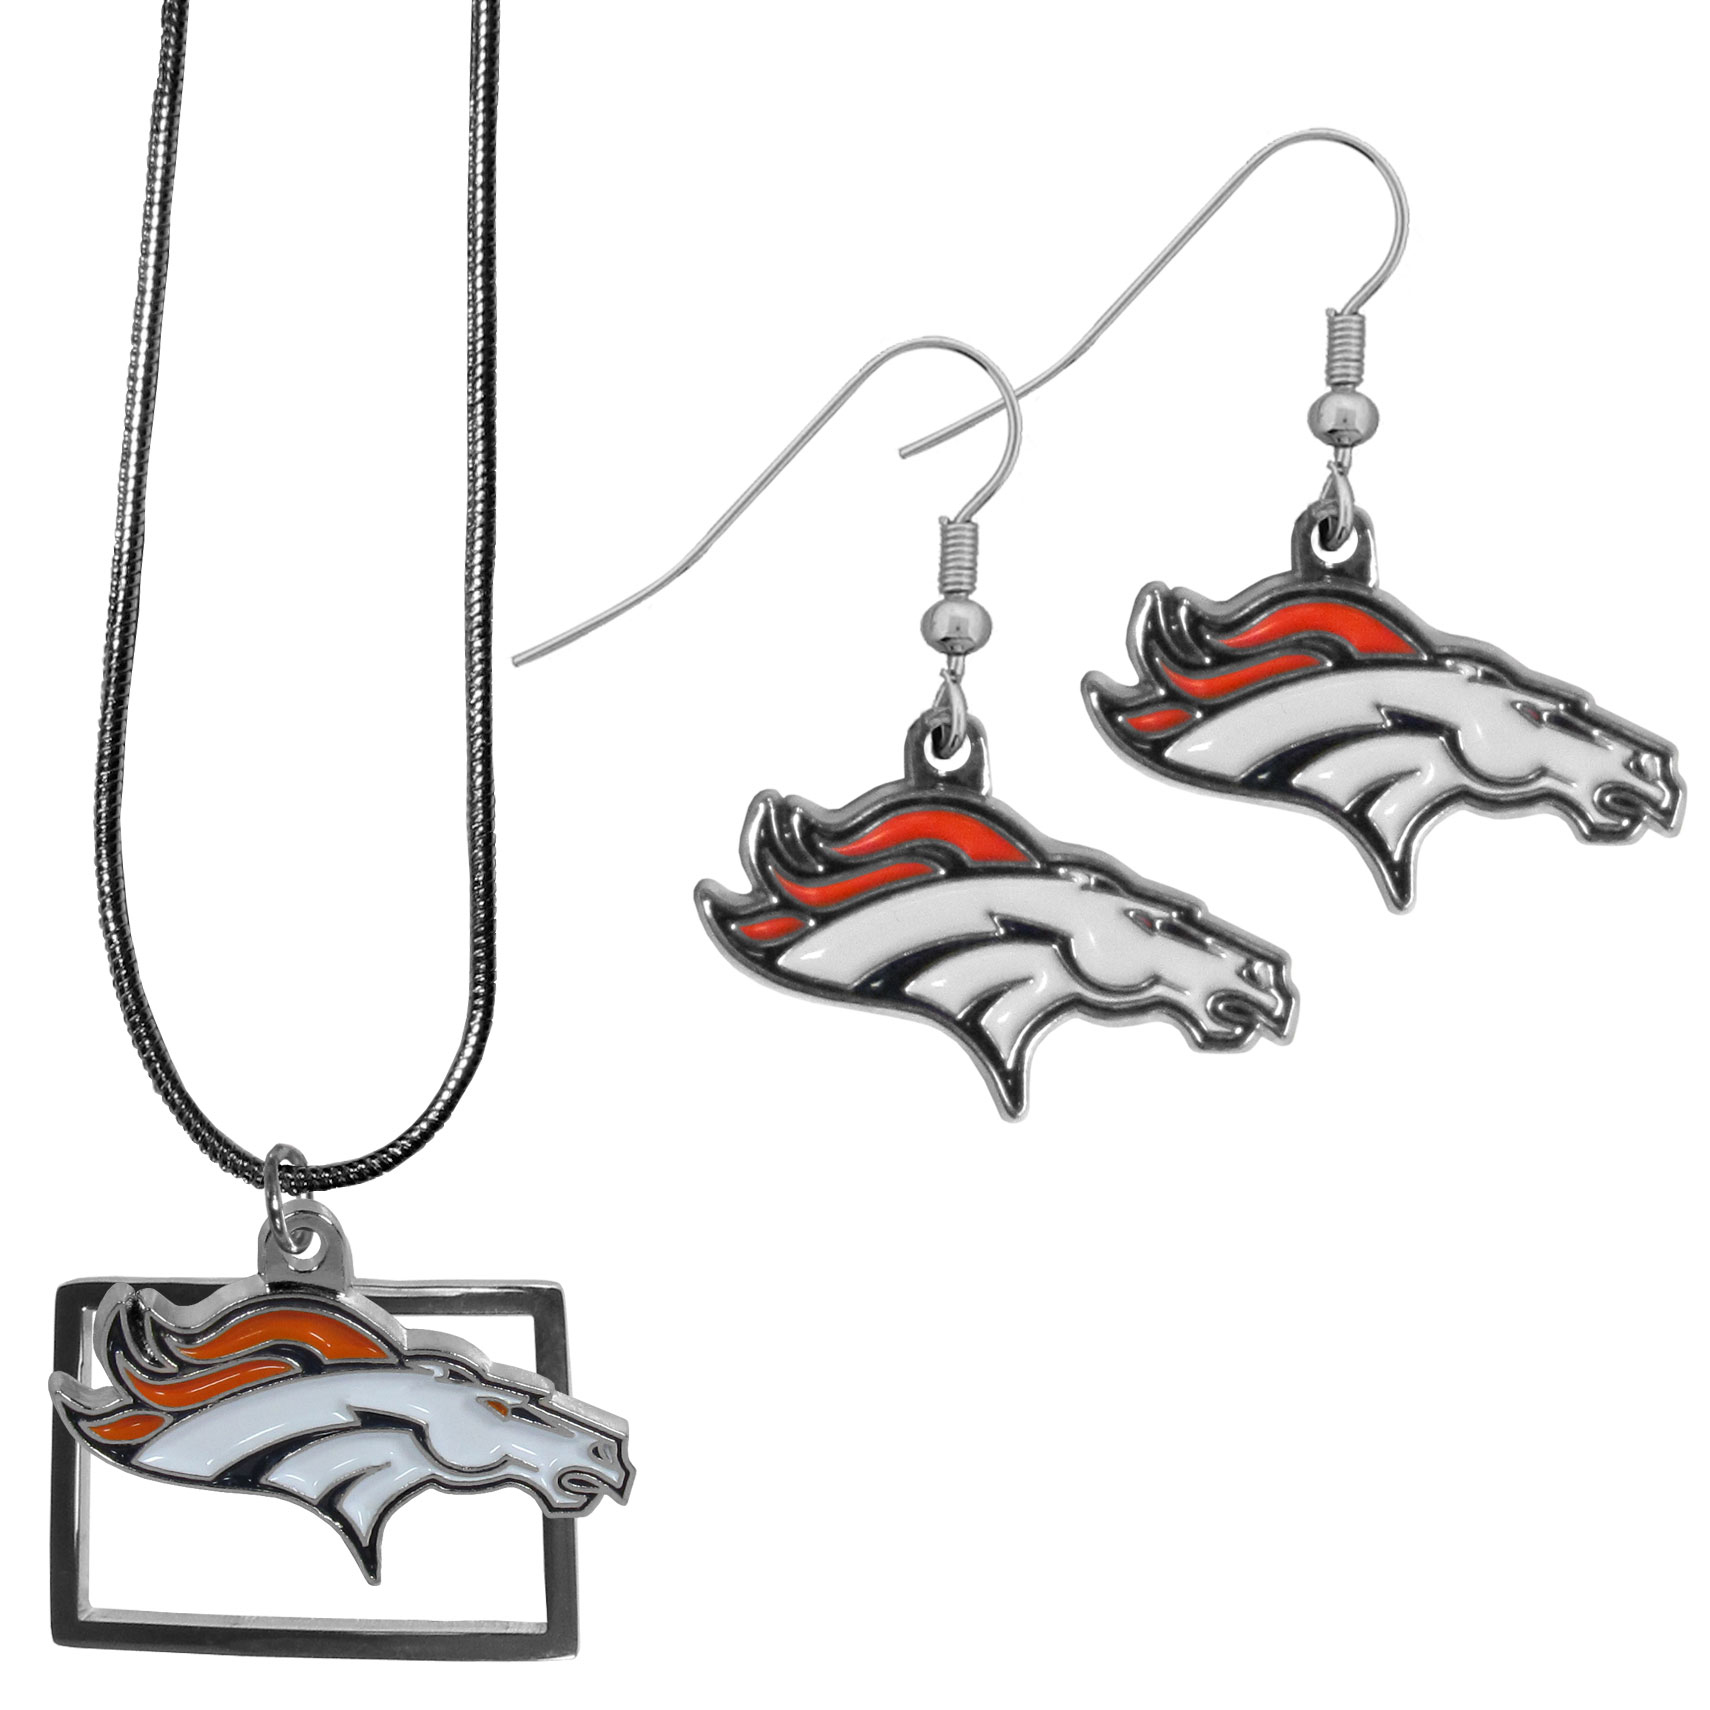 Denver Broncos Dangle Earrings and State Necklace Set - Get in on the trend! State themes are a trend that just keeps getting more popular and this jewelry set takes the state style and give it a sporty twist with a Denver Broncos necklace that features an Arizona state outline charm paired with a beautiful team charm and matching team charm dangle earrings. The earrings feature hypoallergenic fishhook posts that are nickel free.